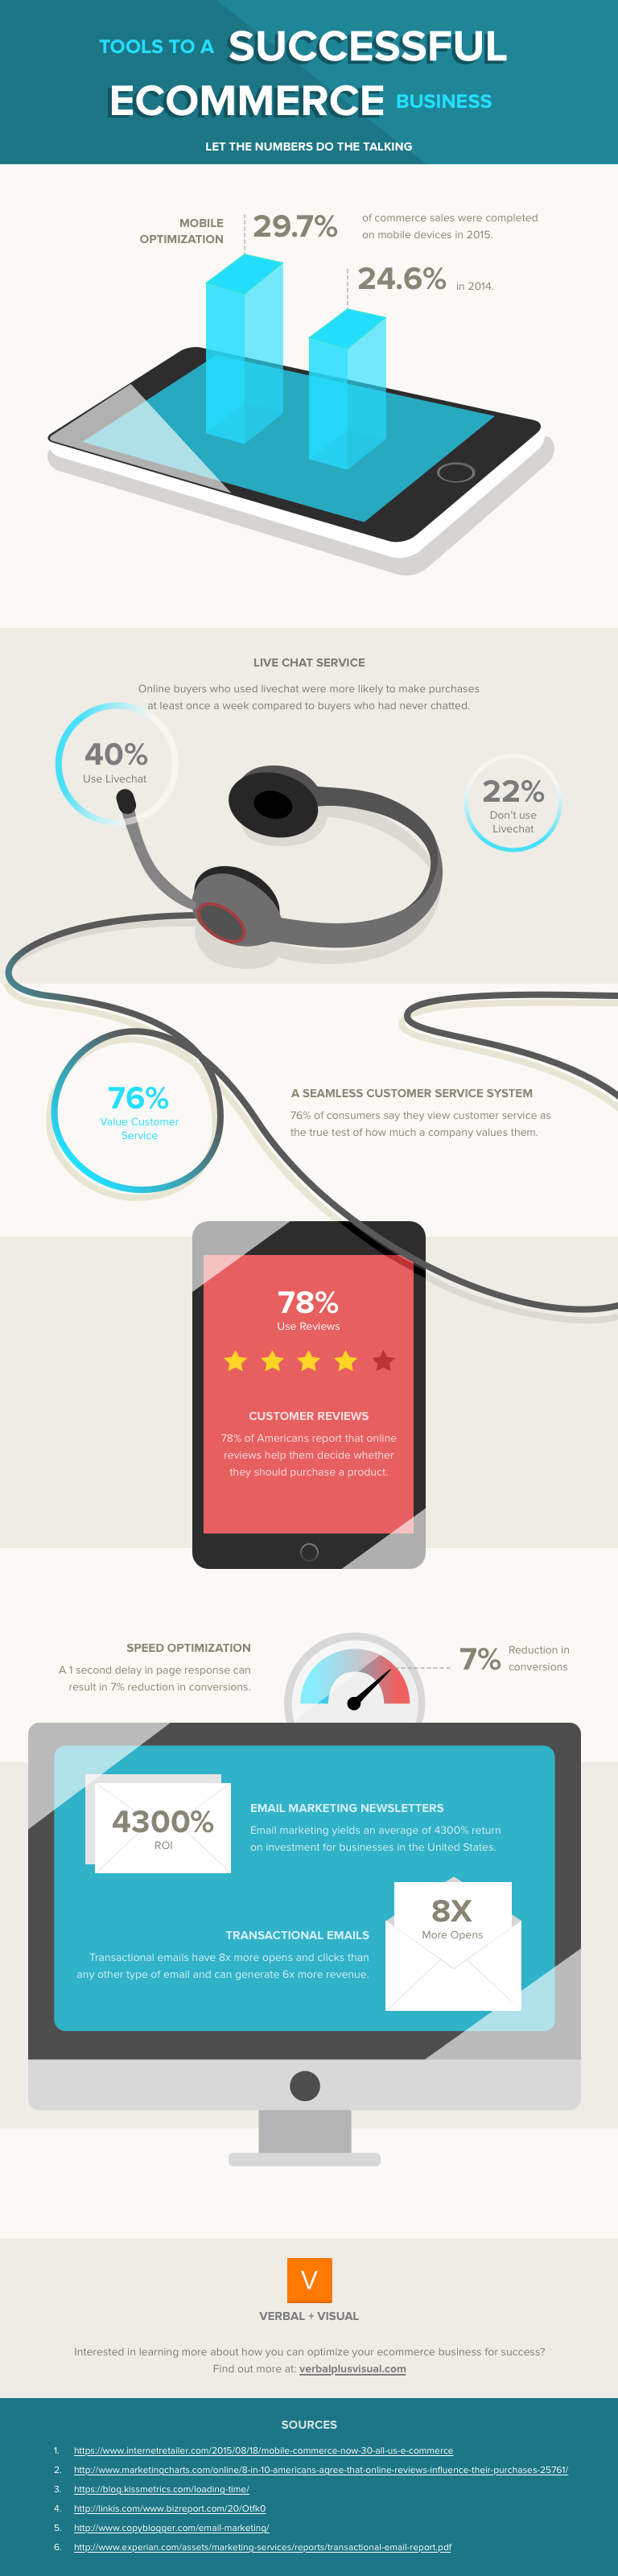 E-commerce infographic best practices. Set yourself up for success. Verbal+Visual